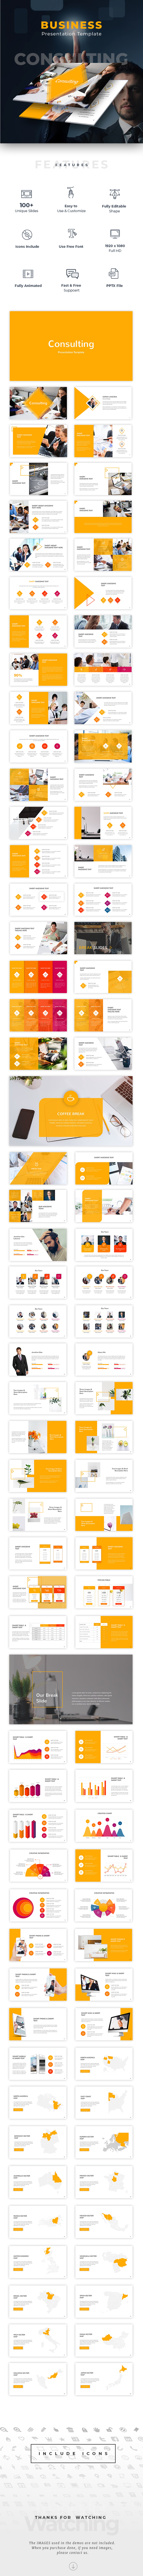 Business Consulting Google Slides - Google Slides Presentation Templates